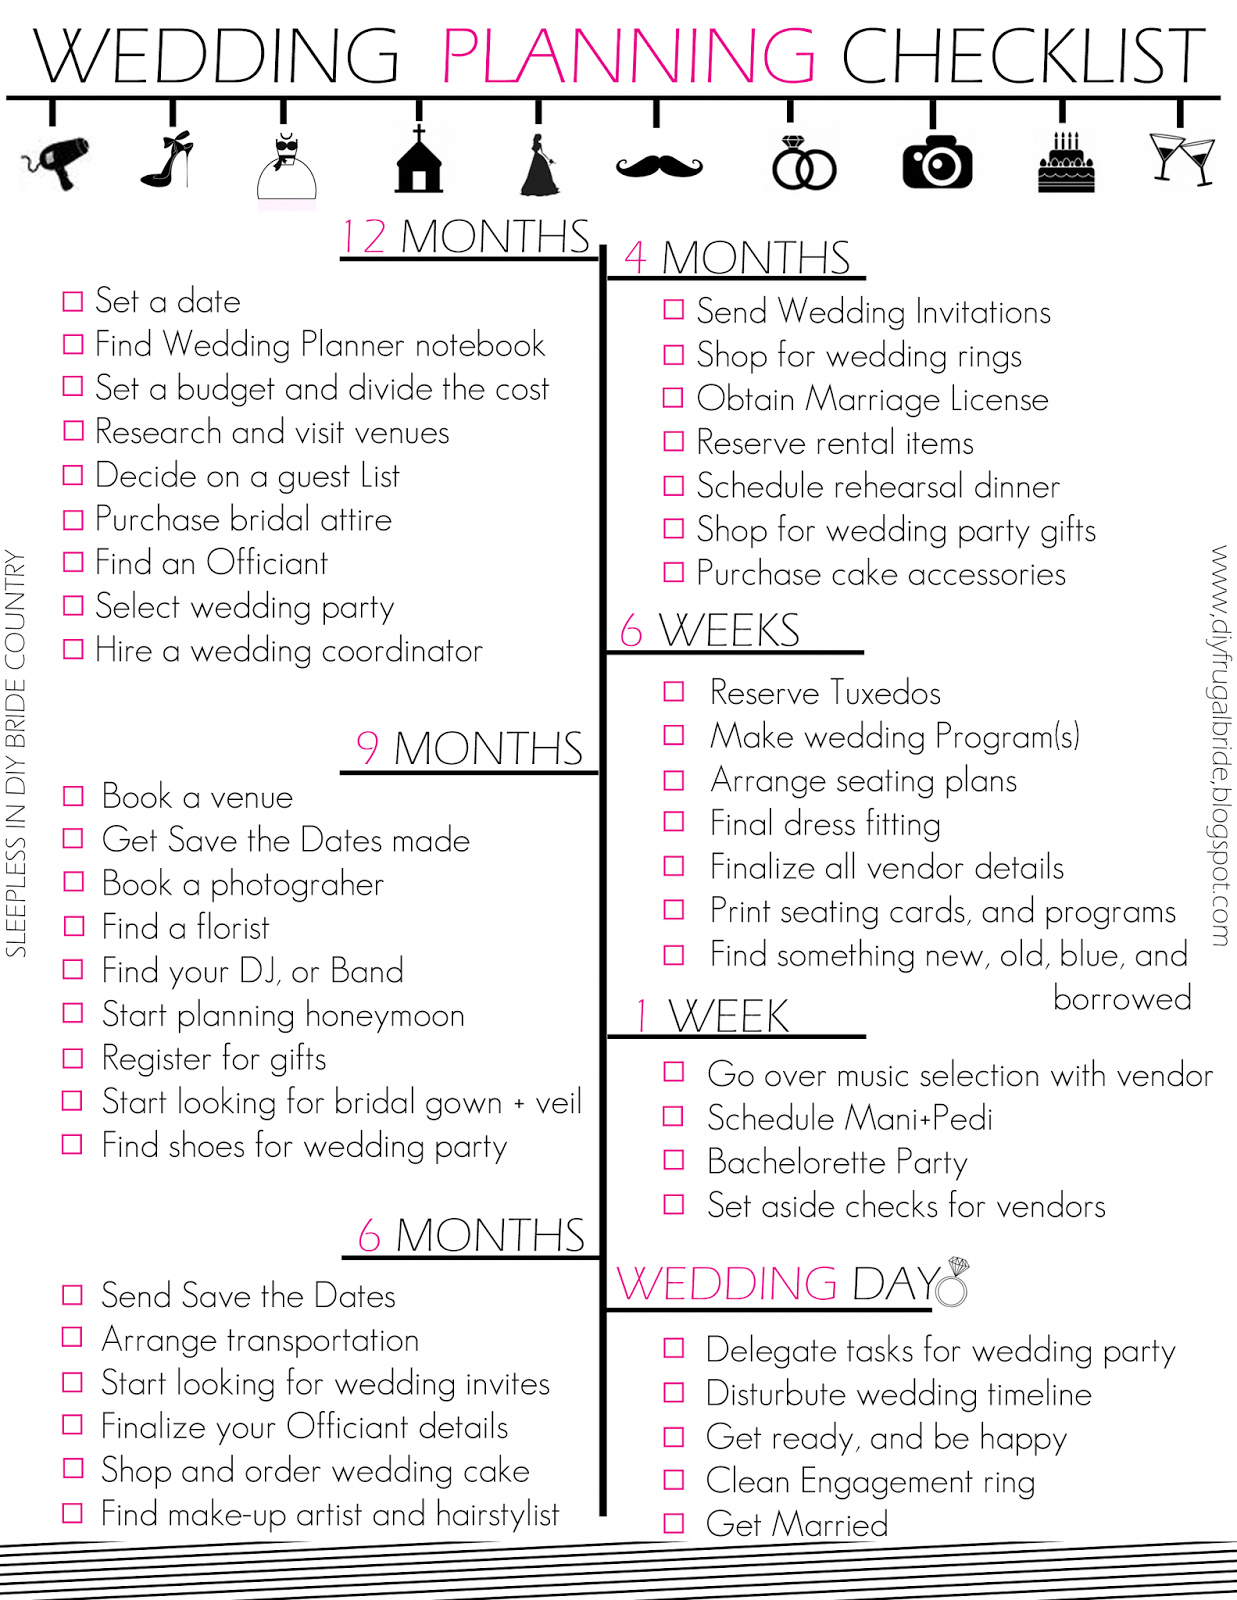 Budget Bride Wedding Checklist And Budget Tips | Wedding In 2019 - Free Printable Wedding Checklist